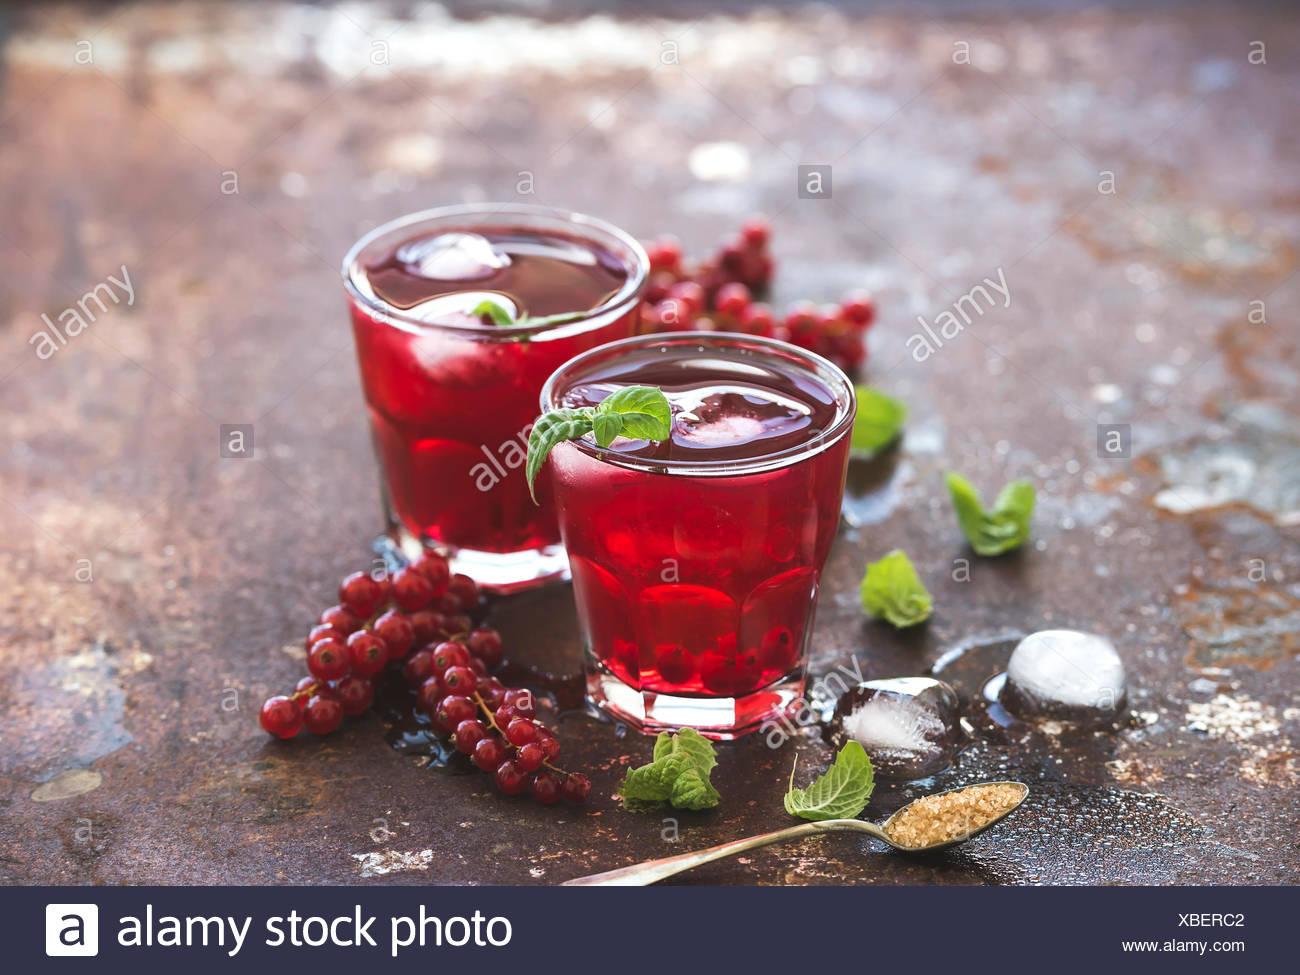 Red berry Limonade mit Eis und Minze auf Grunge Vintage rostigen Metall Backdround, selektiven Fokus Stockbild